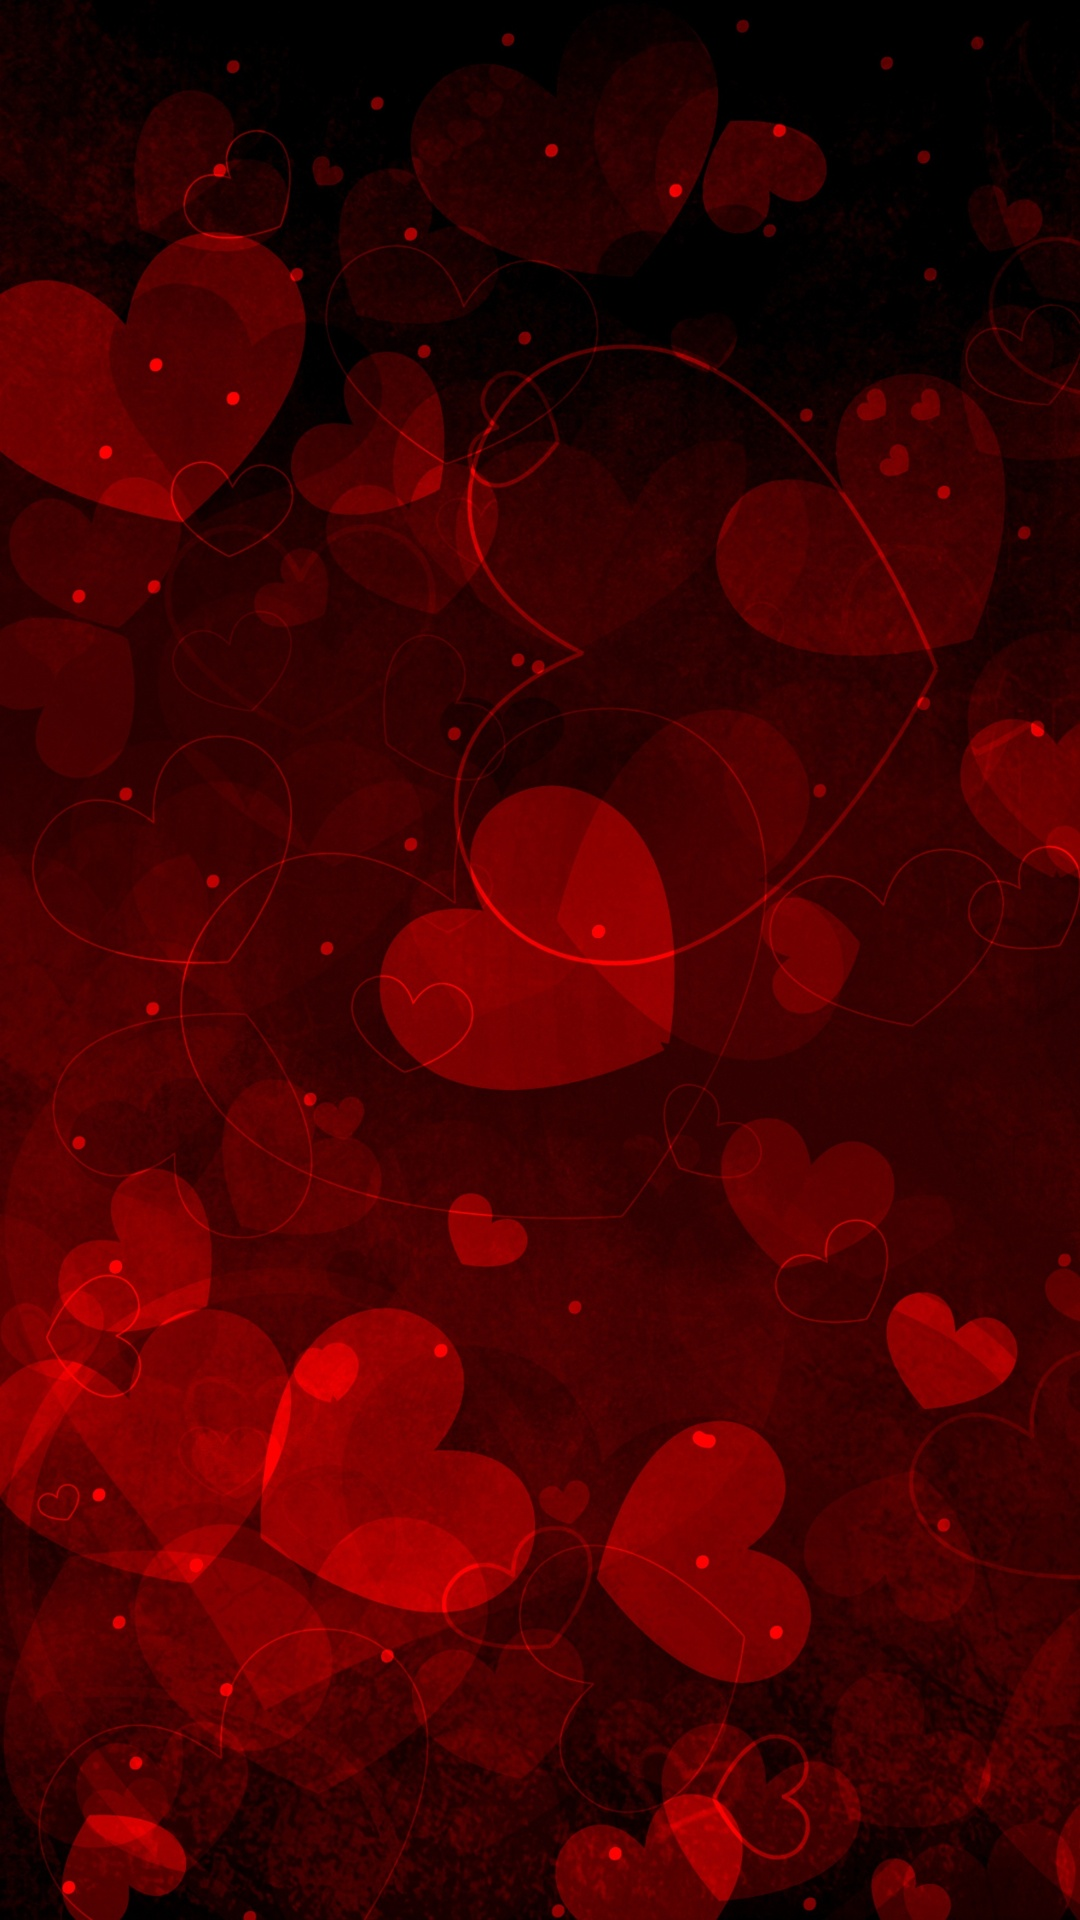 Red hearts art valentine android wallpaper android hd wallpapers voltagebd Images